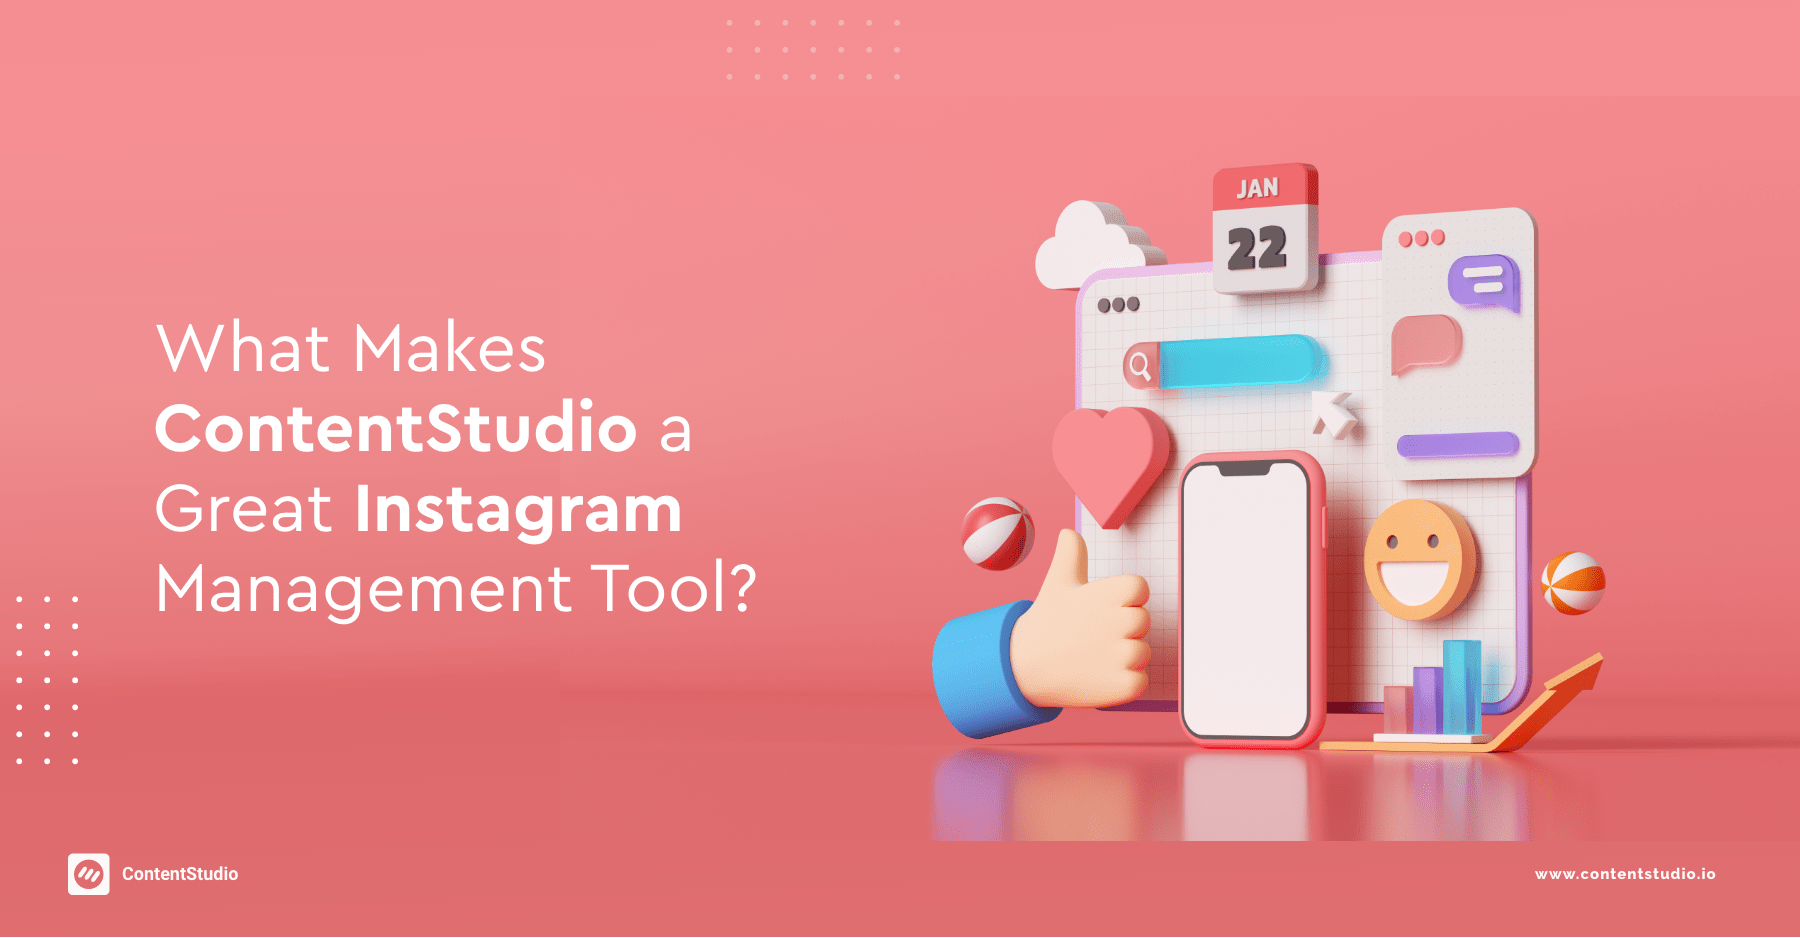 What Makes ContentStudio a Great Instagram Management Tool?